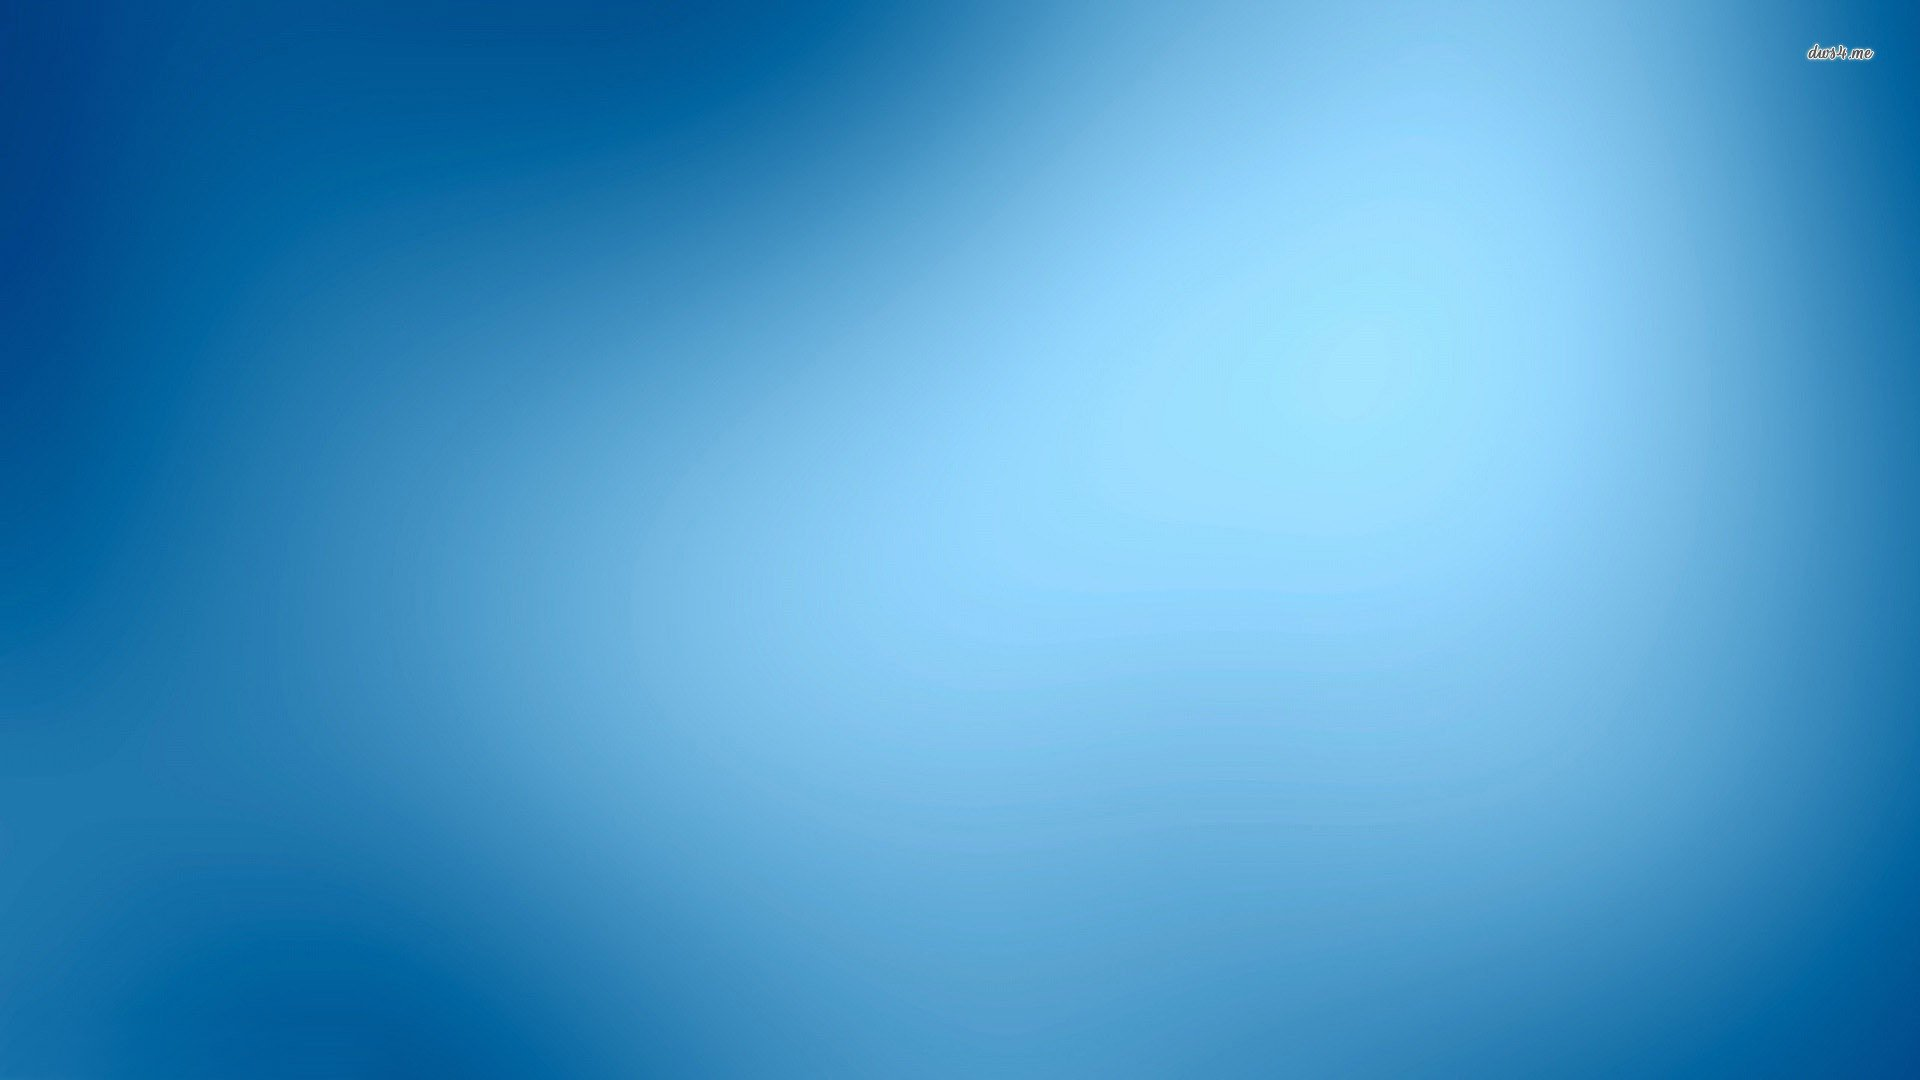 wallpaper background gradient blue - photo #4